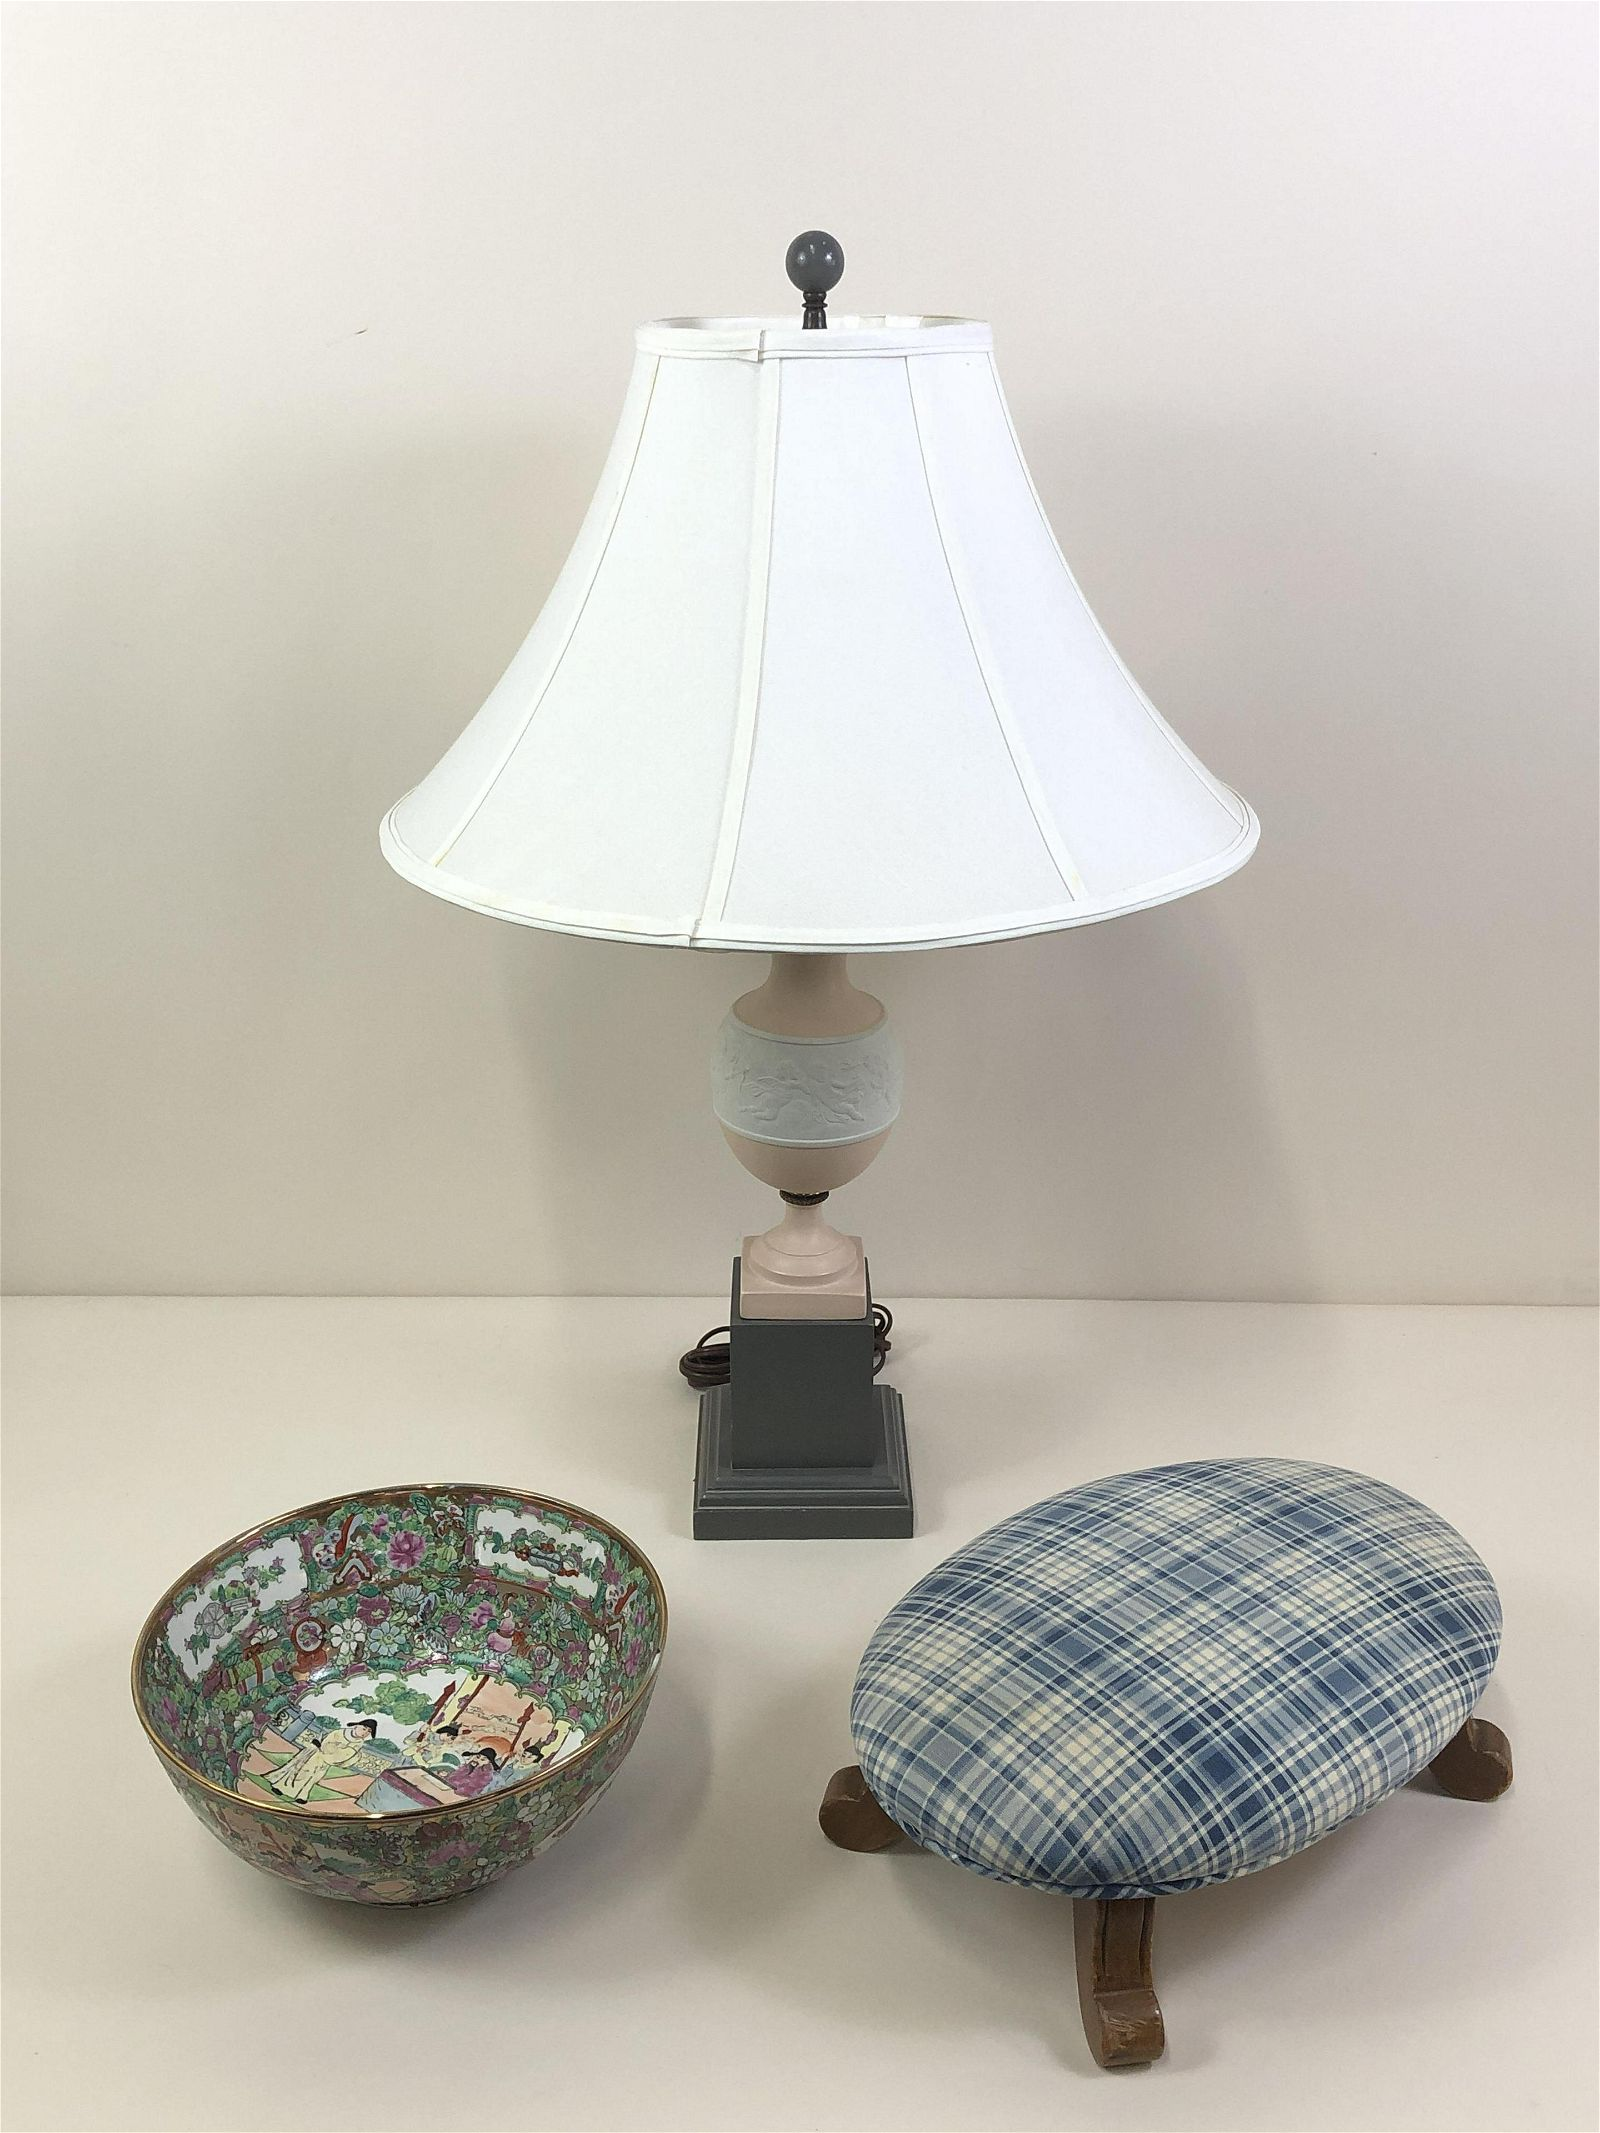 Lamp, Famille Rose Bowl and Foot Stool